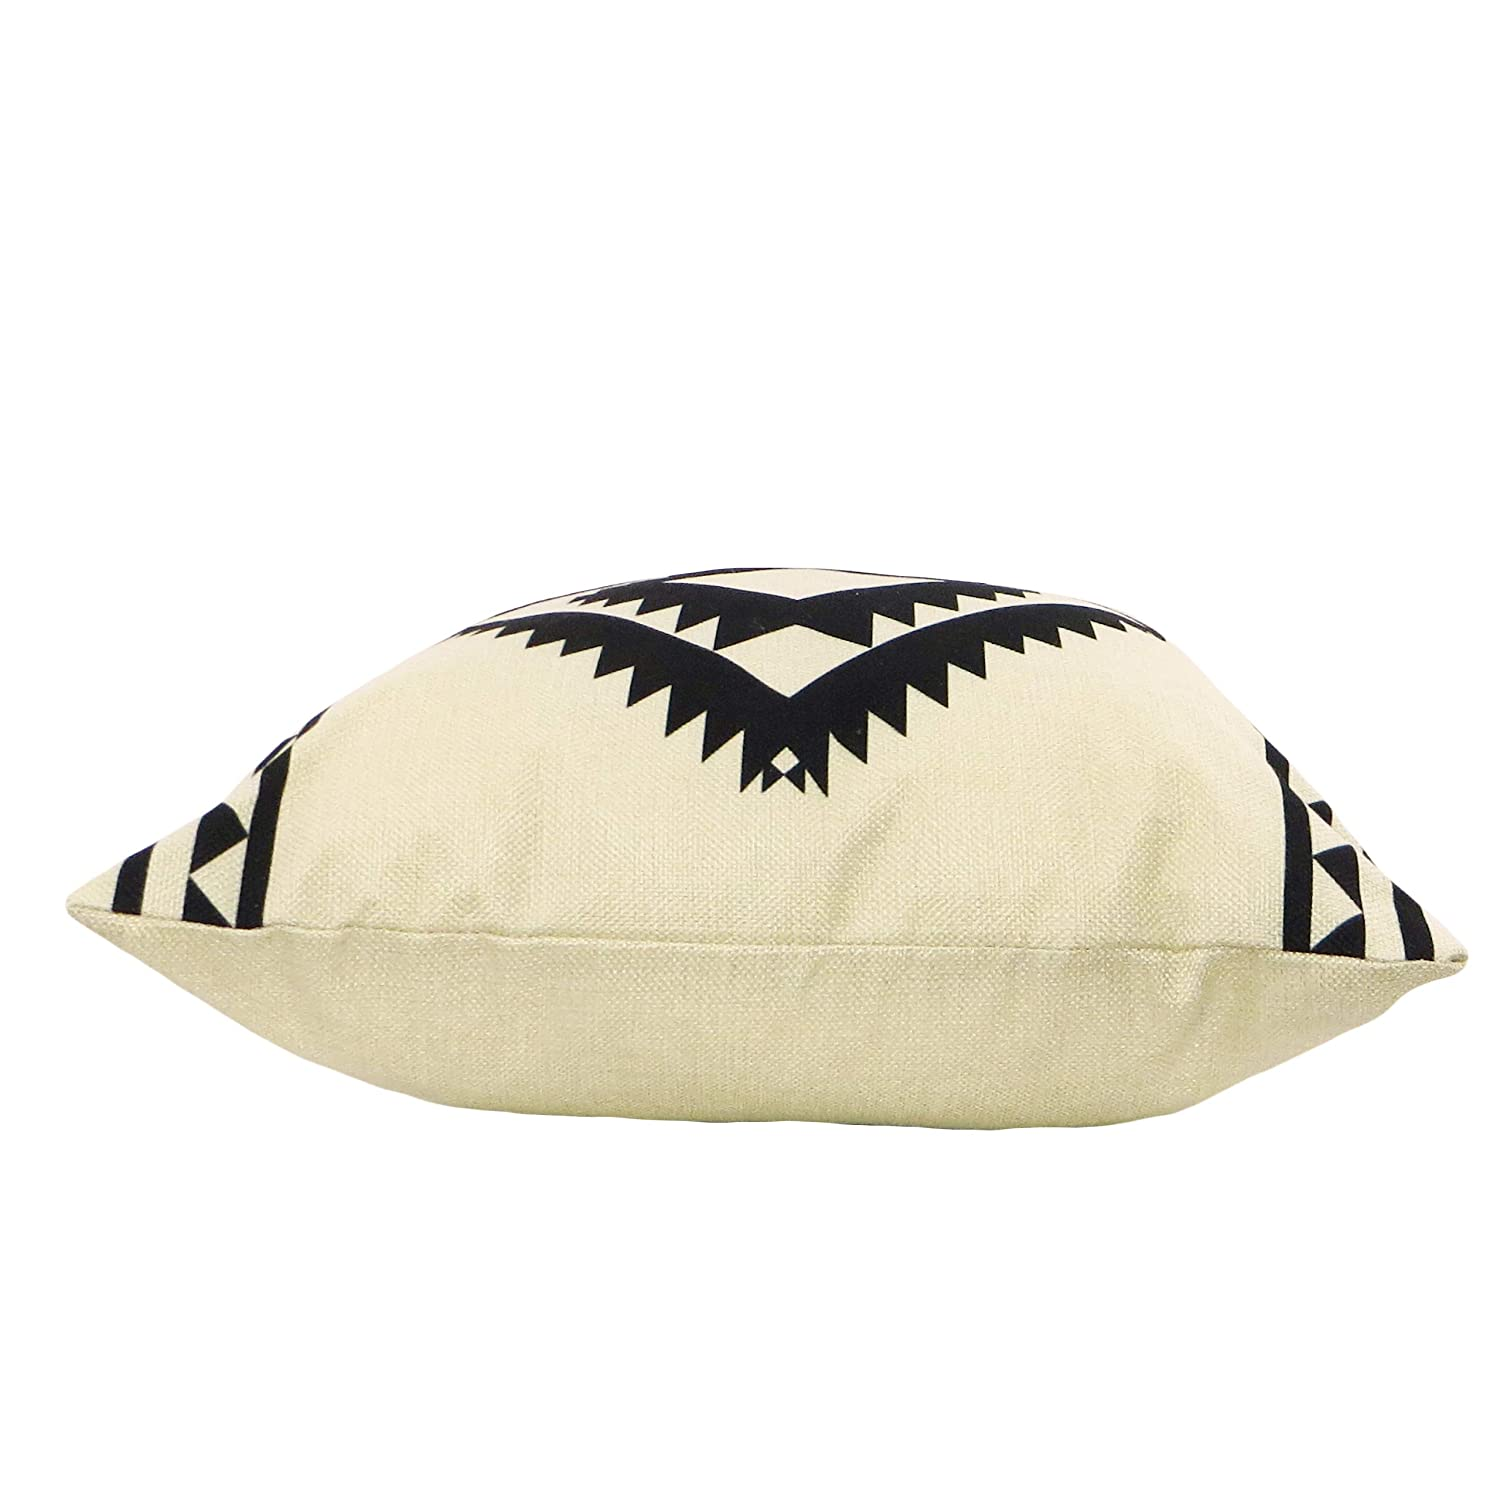 Set of 2 Bed or Desk Decorative Accent Throw Pillow Covers Minimalist Design 18x18 in Cushion Cases with Zipper Couch Southwest Aztec Tribal Natural White and Black Perfect for Sofa